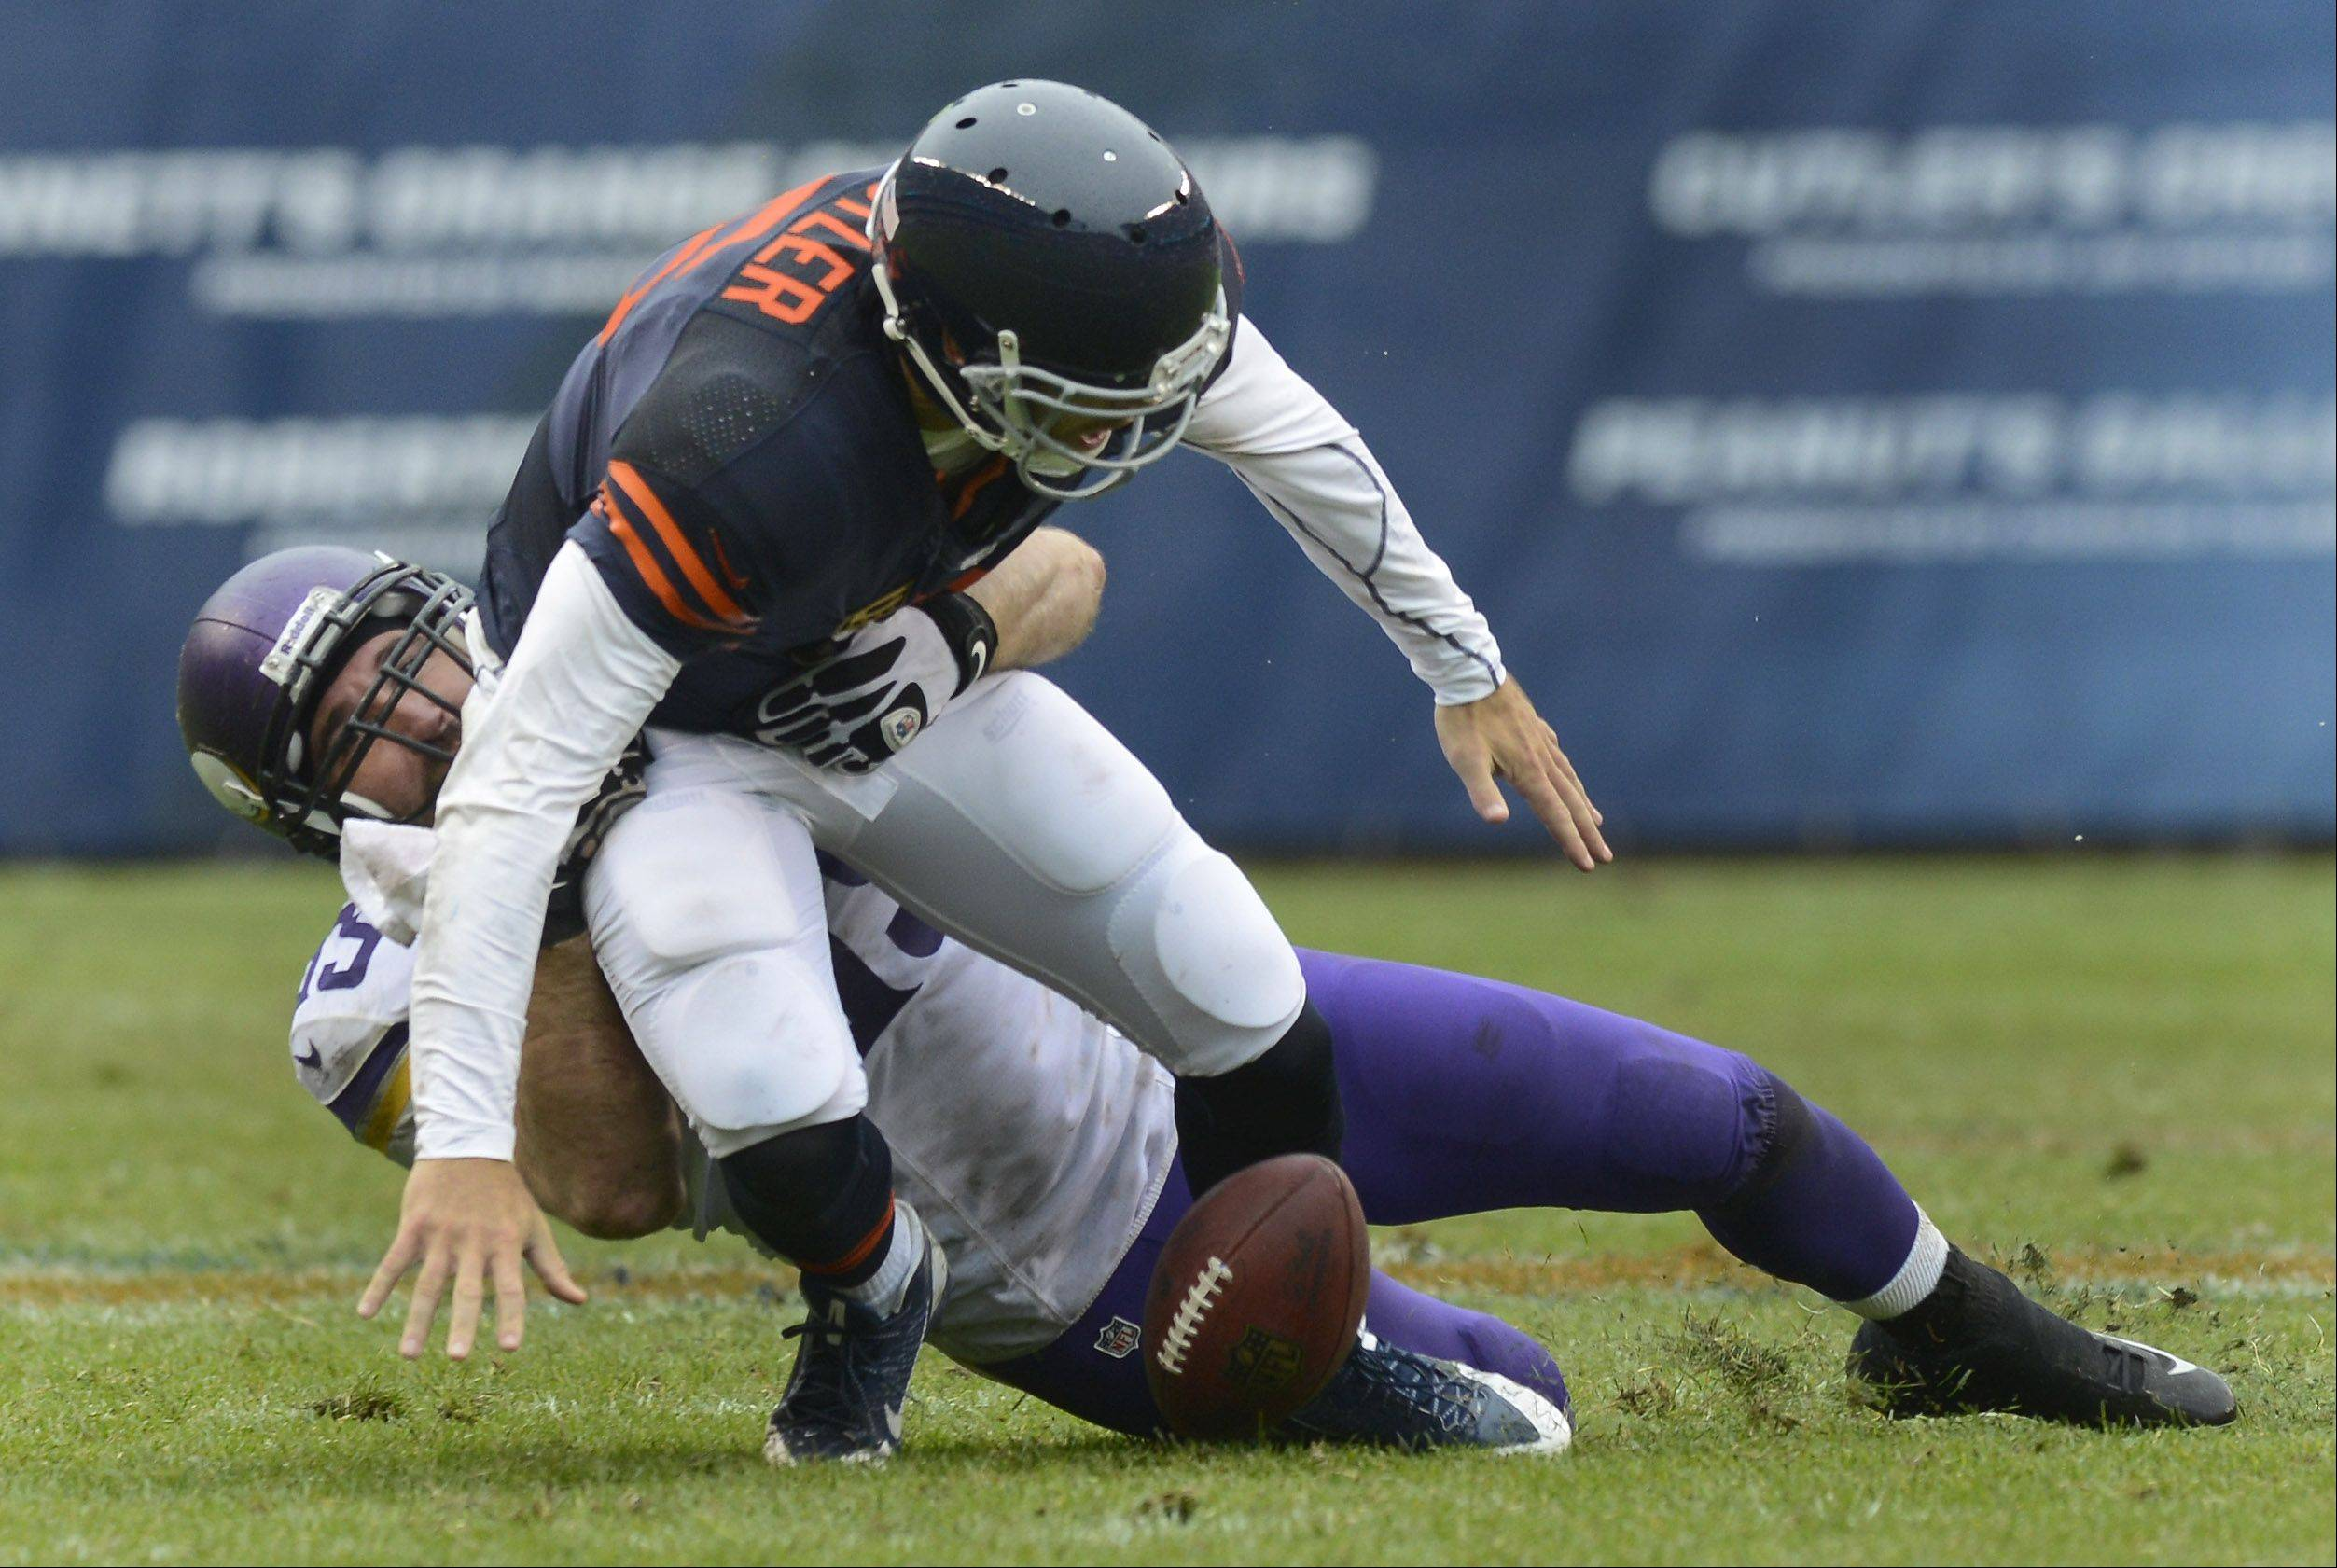 Chicago Bears quarterback Jay Cutler fumbles after being tackled by Minnesota Vikings defensive end Jared Allen during the second quarter of Sunday's game at Soldier Field. Minnesota returned the fumble for a touchdown.